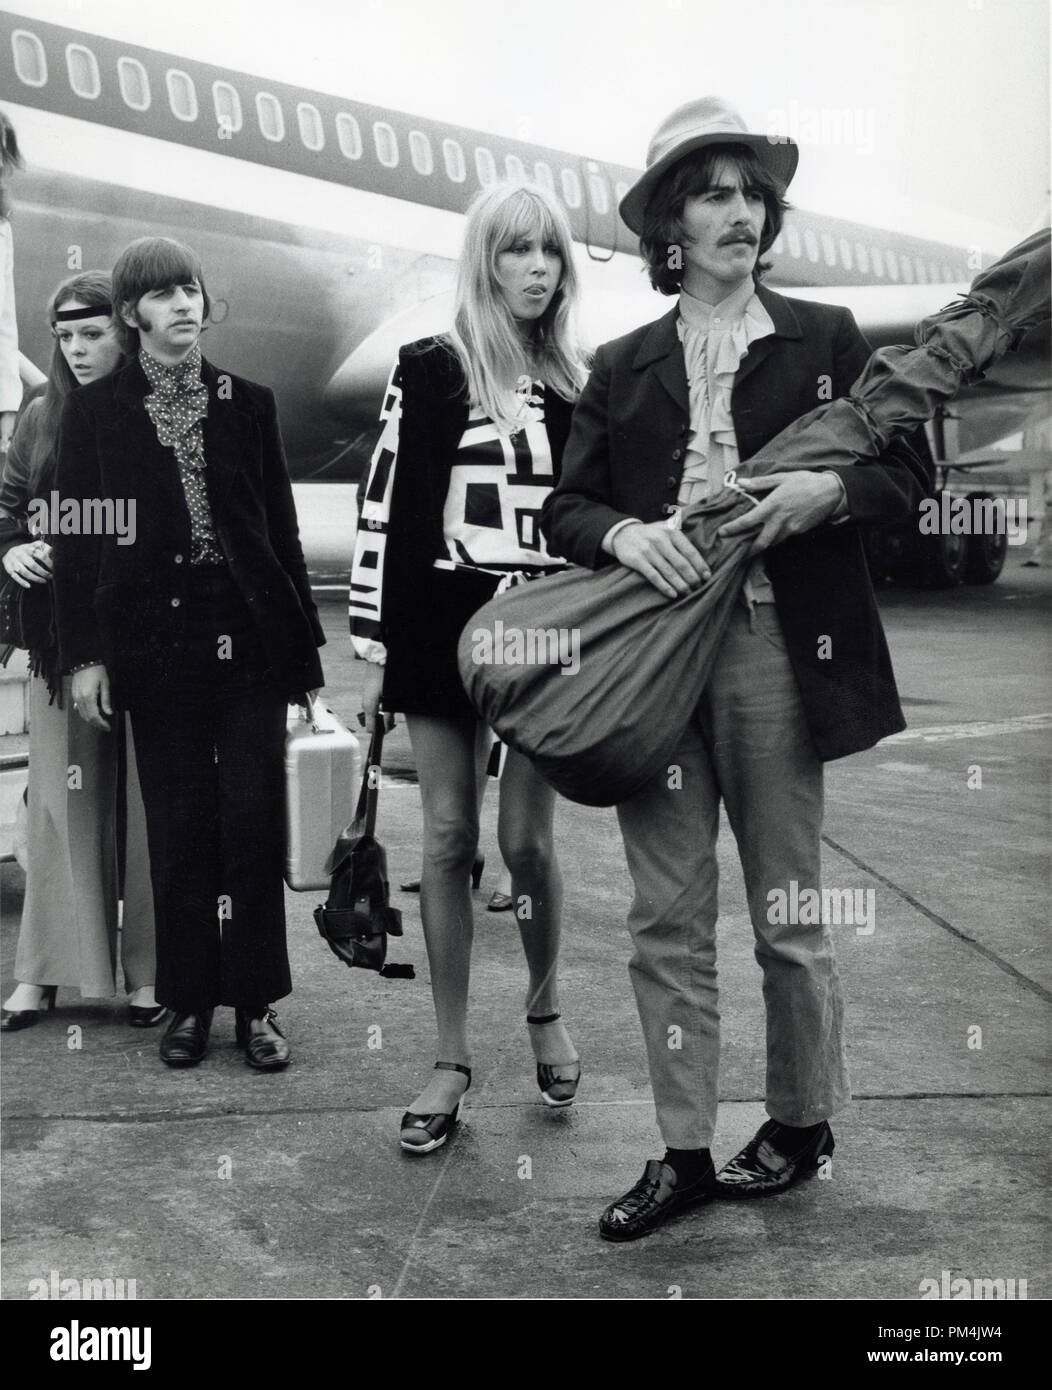 Beatles George Harrison and Ringo Starr along with Pattie Boyd and Maureen,1968. File Reference #1013_060 THA © JRC /The Hollywood Archive - All Rights Reserved. - Stock Image